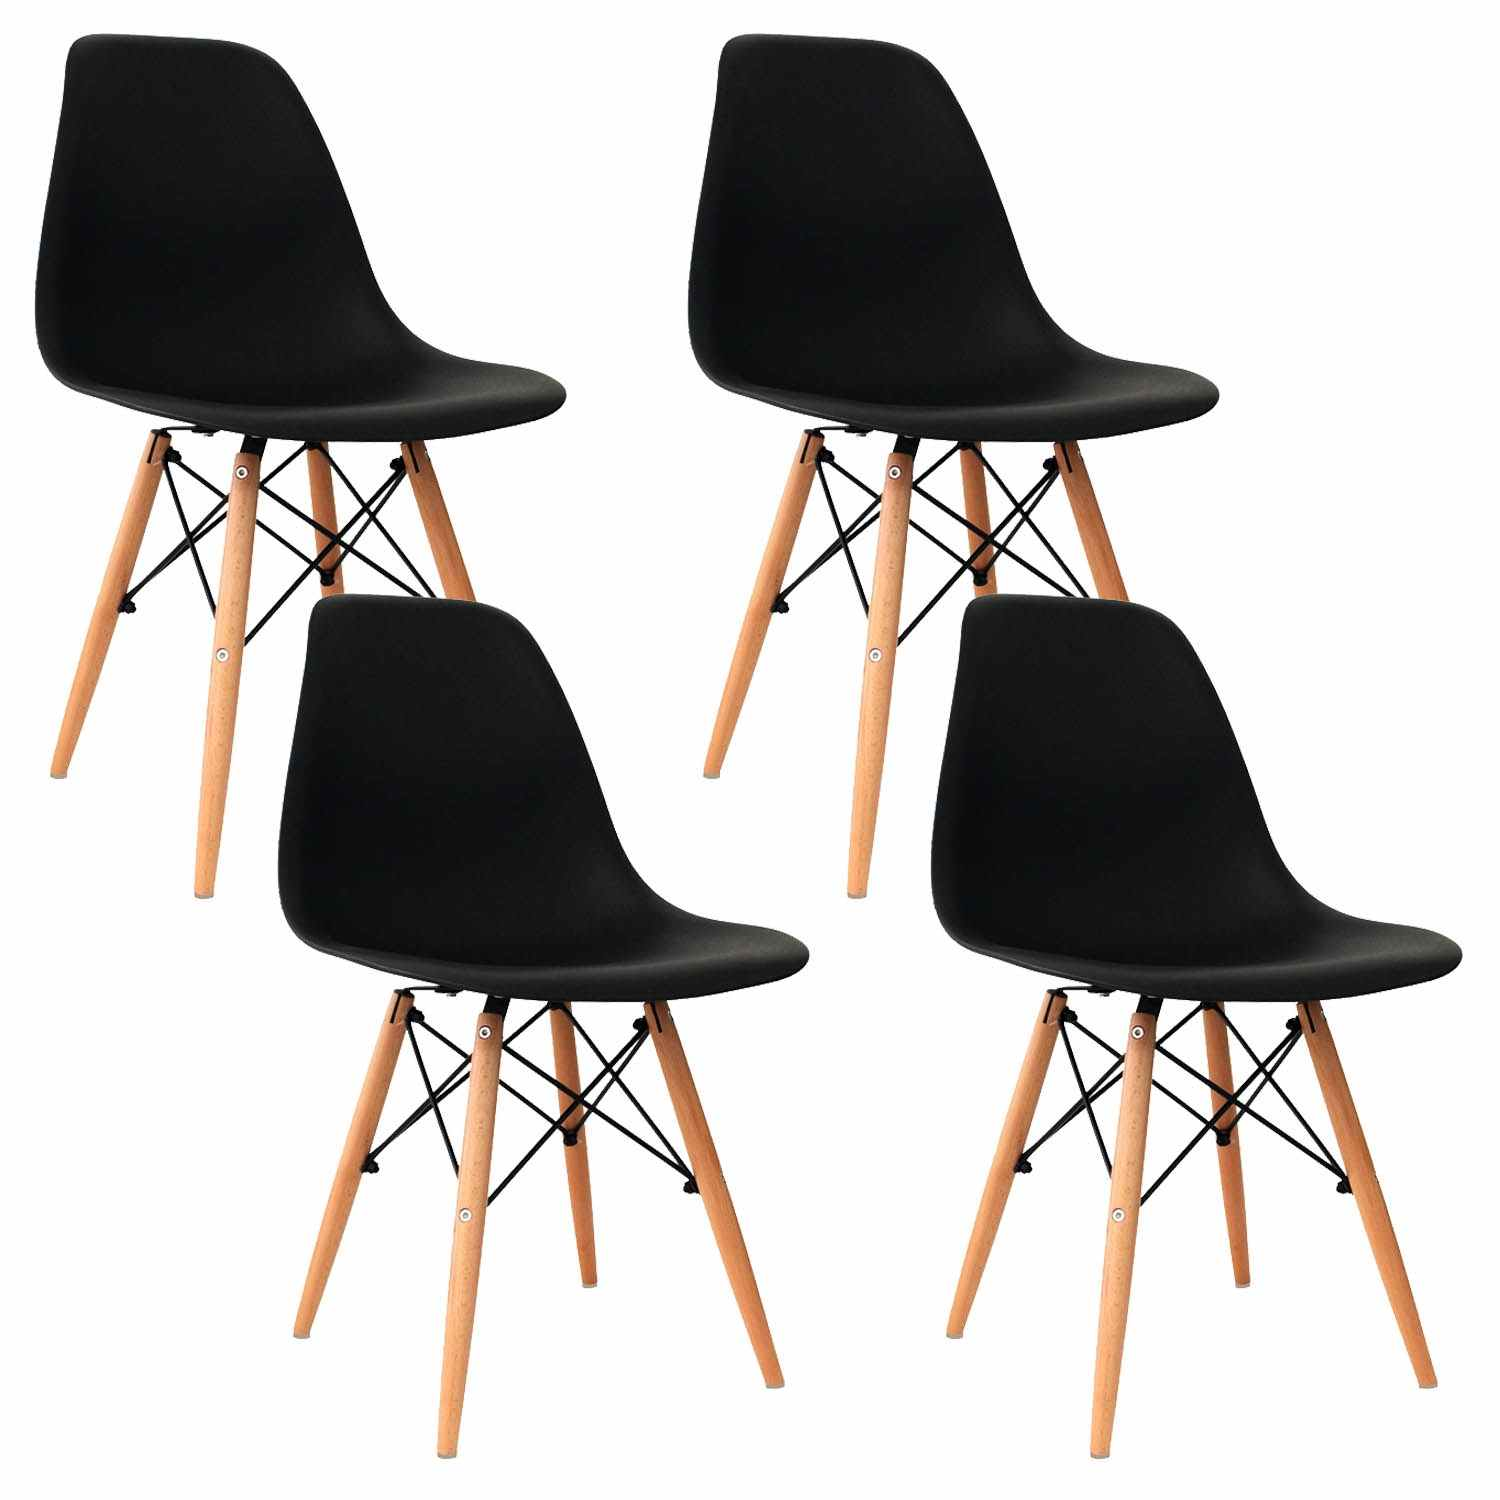 Deco in paris lot de 4 chaises design noir nina nina x4 noir for Lot 4 chaises